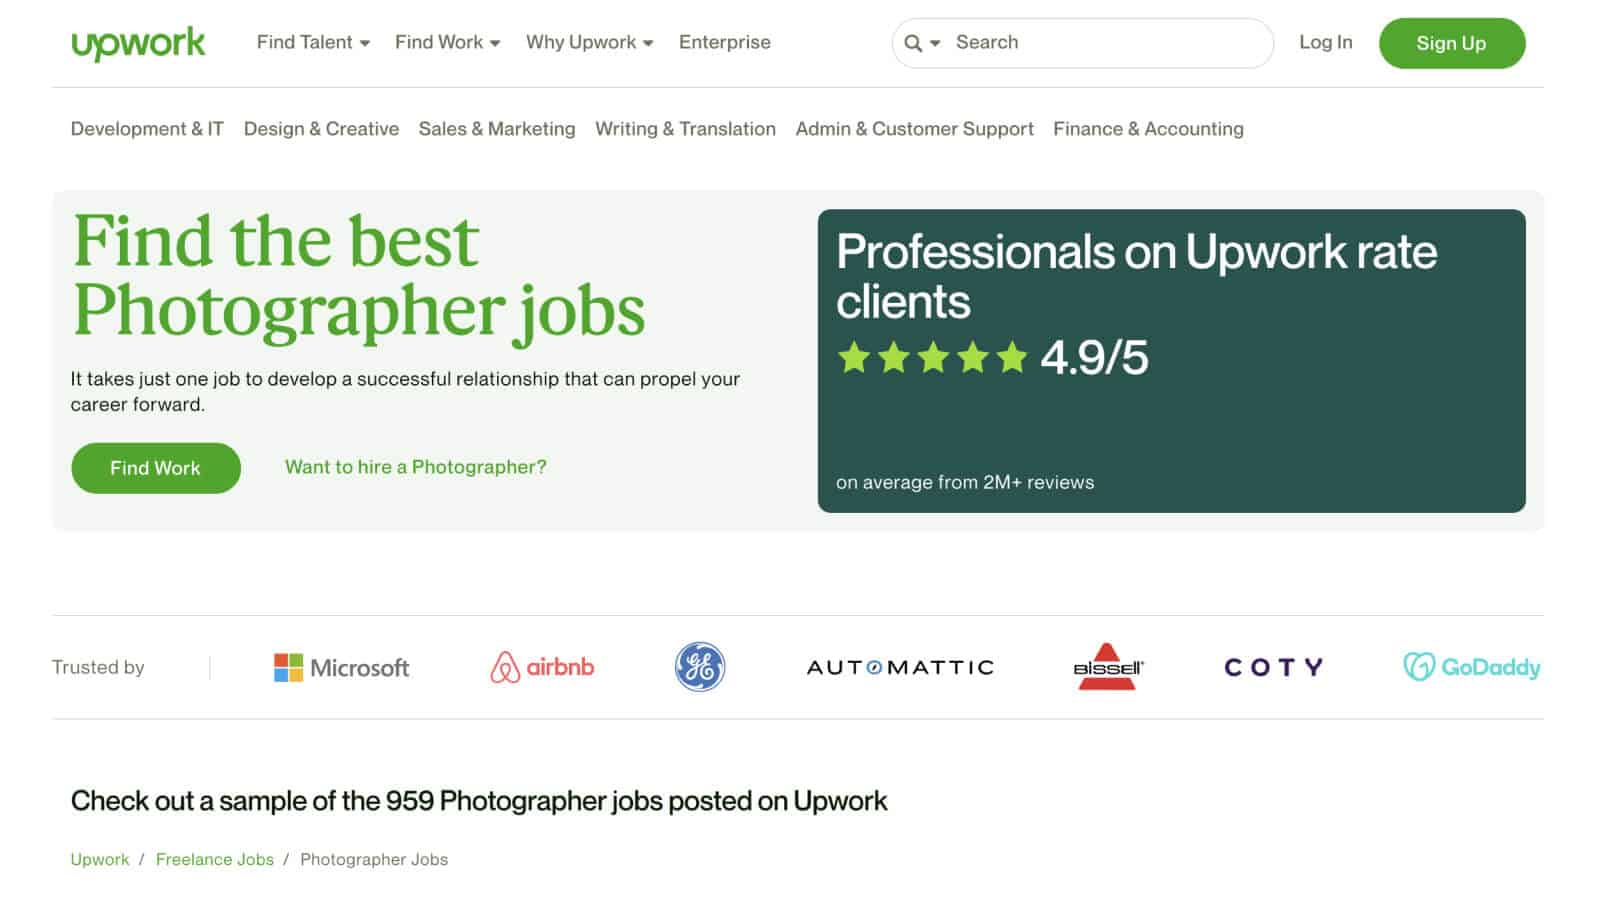 You can find photography jobs on Upwork